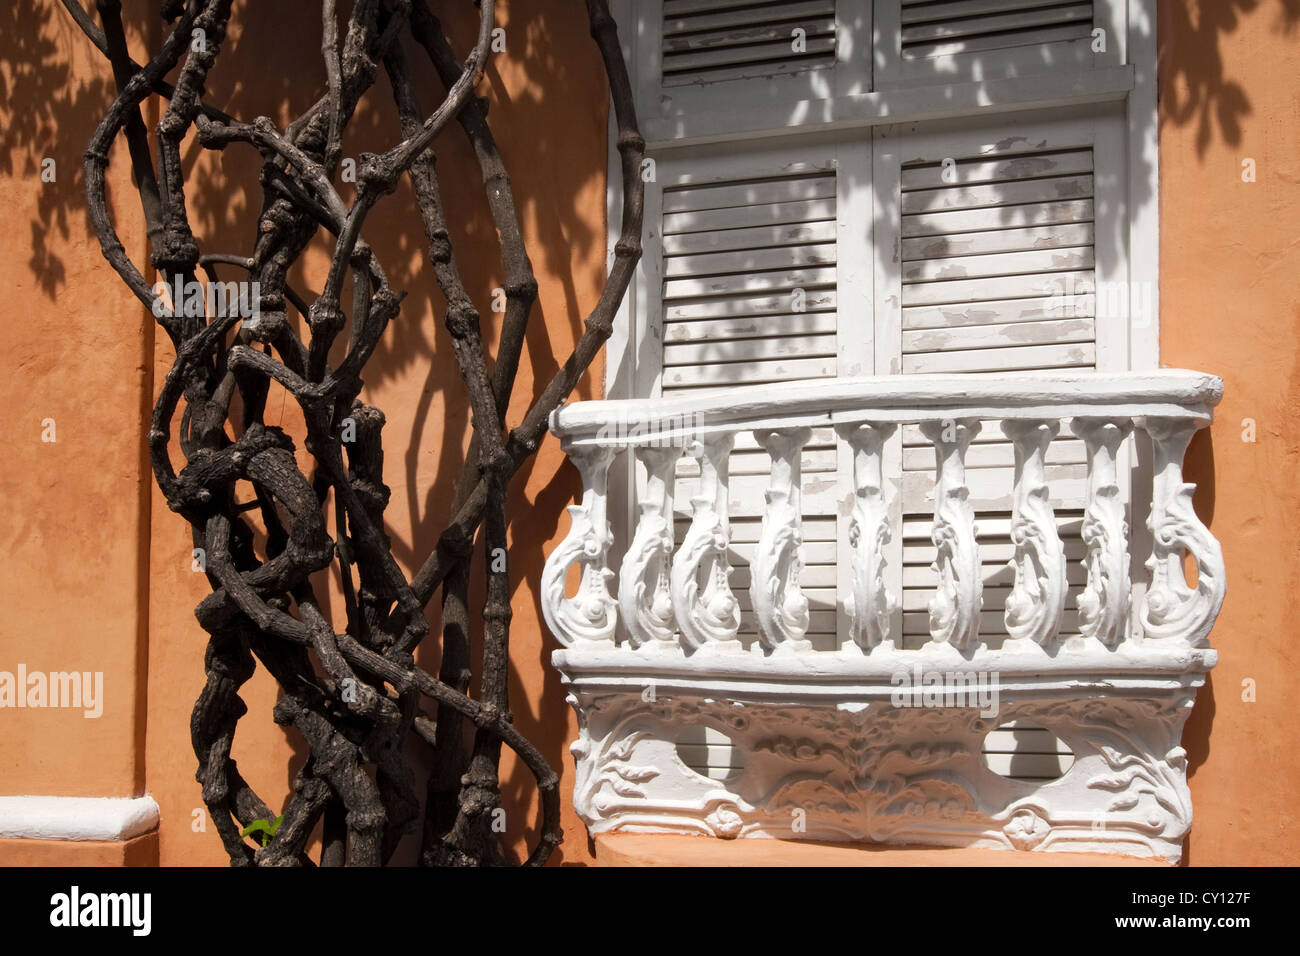 window & plant stems Barrio San Diego Cartagena de Indias Colombia - Stock Image